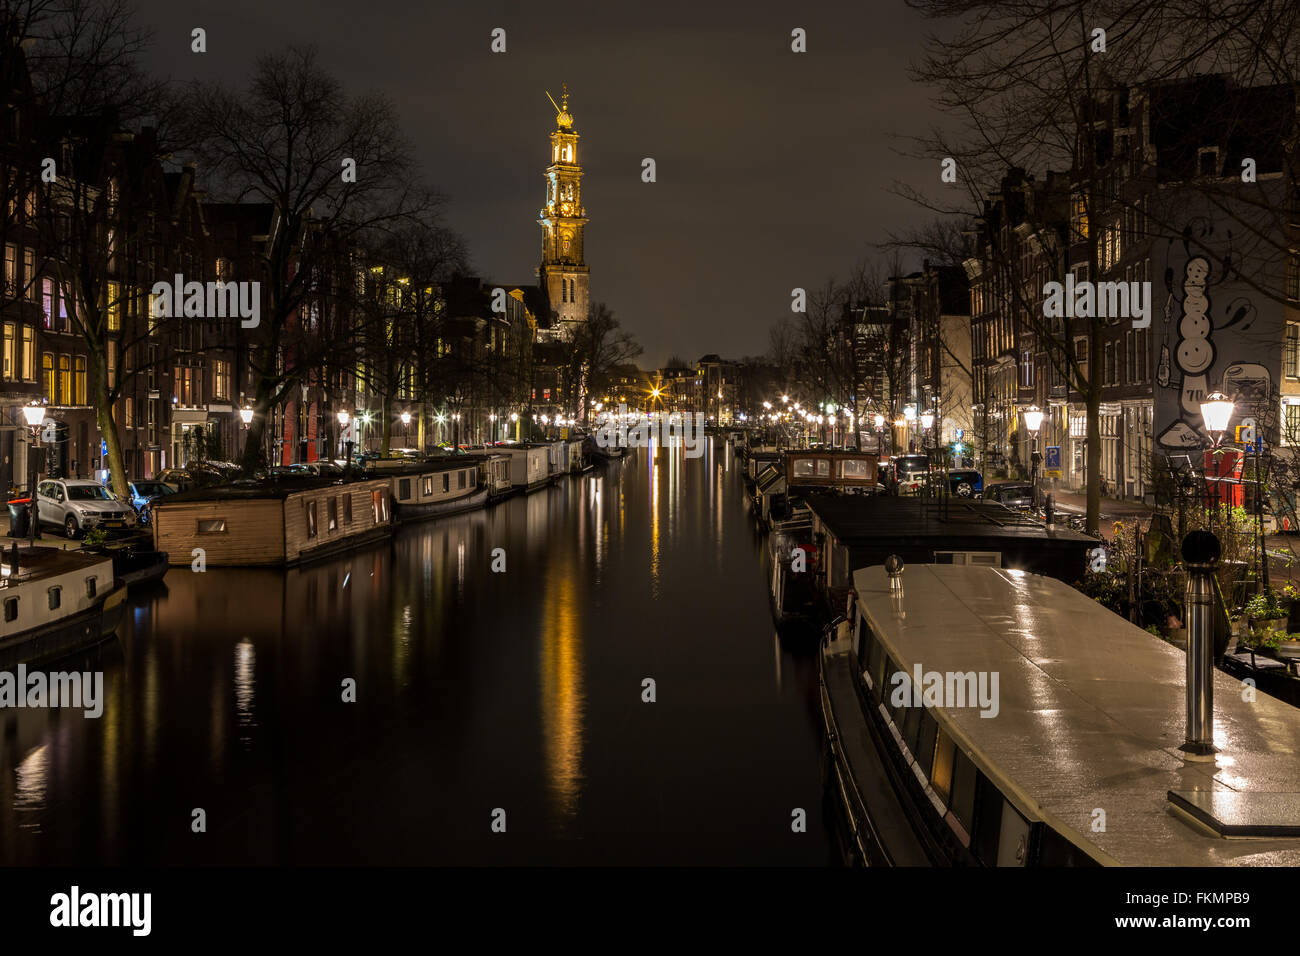 Houseboats on the Prinsengracht - Stock Image